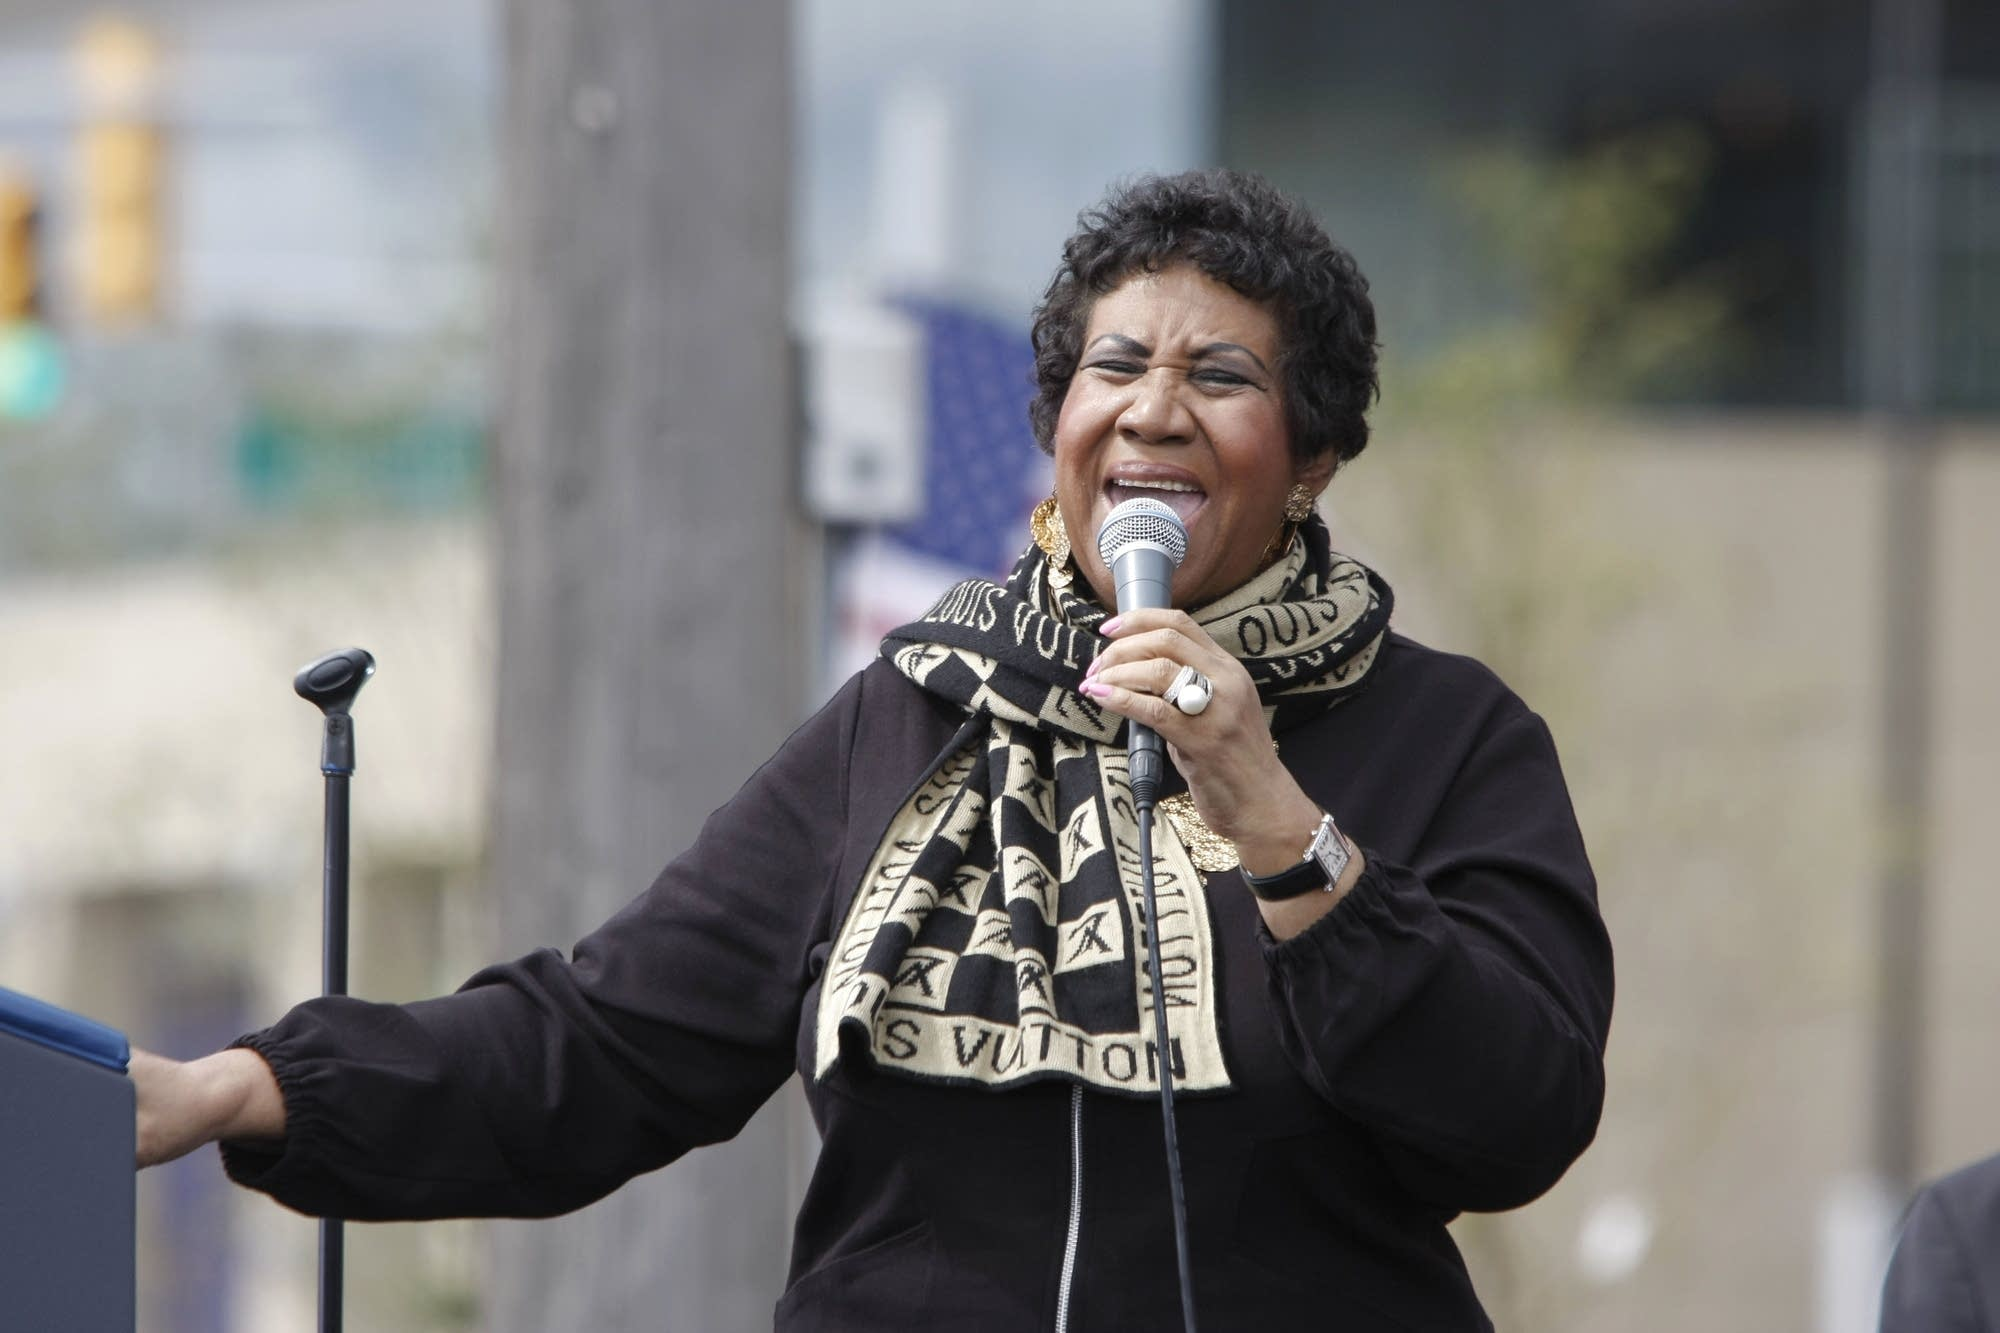 Singer Aretha Franklin performs during a Labor Day event in Detroit.